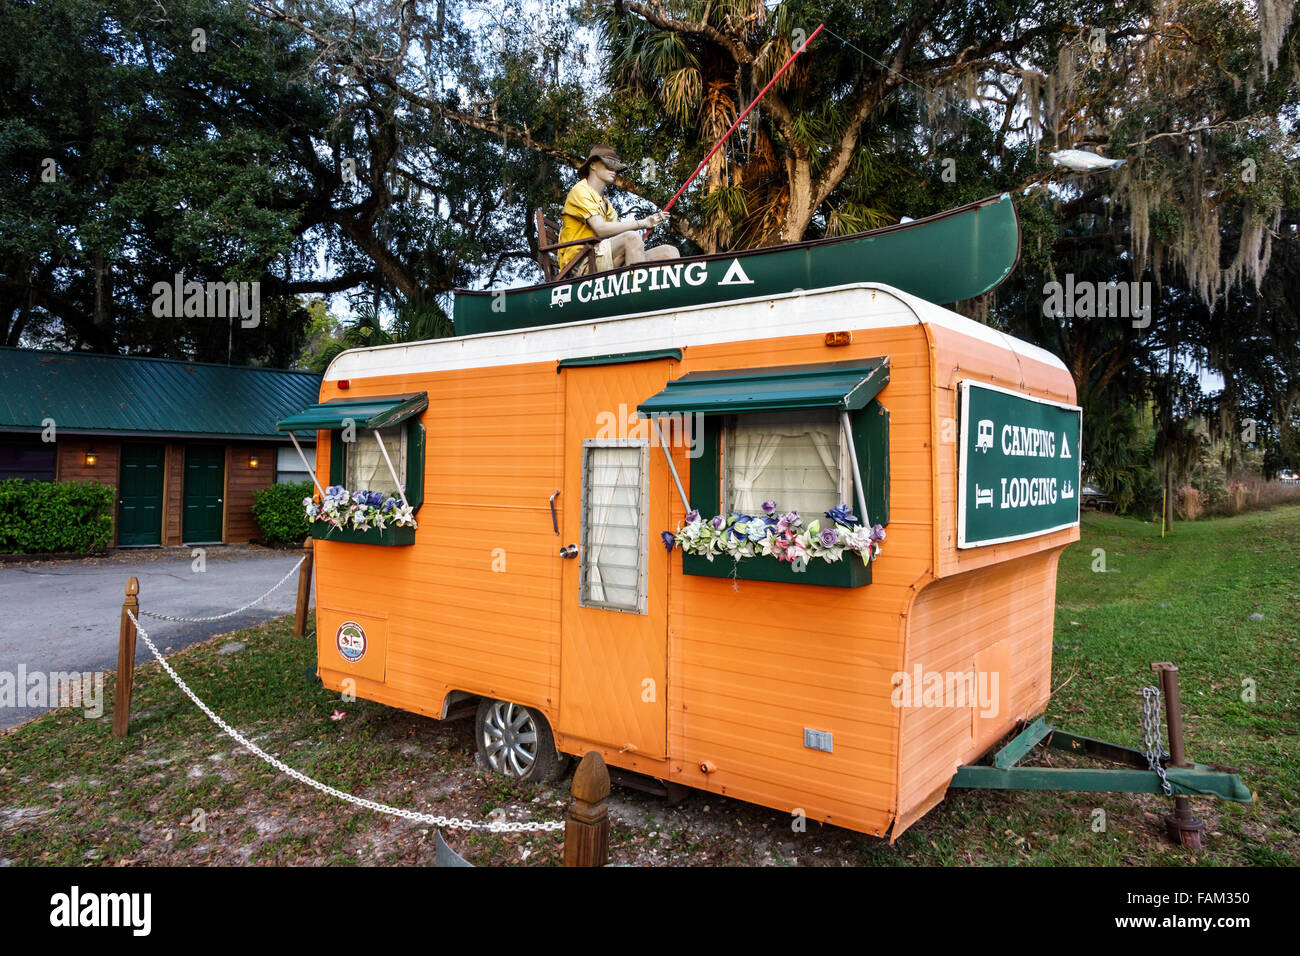 Florida Inverness Withlacoochee River Riverside Lodge RV Resort & and Cabins camping camper van - Stock Image